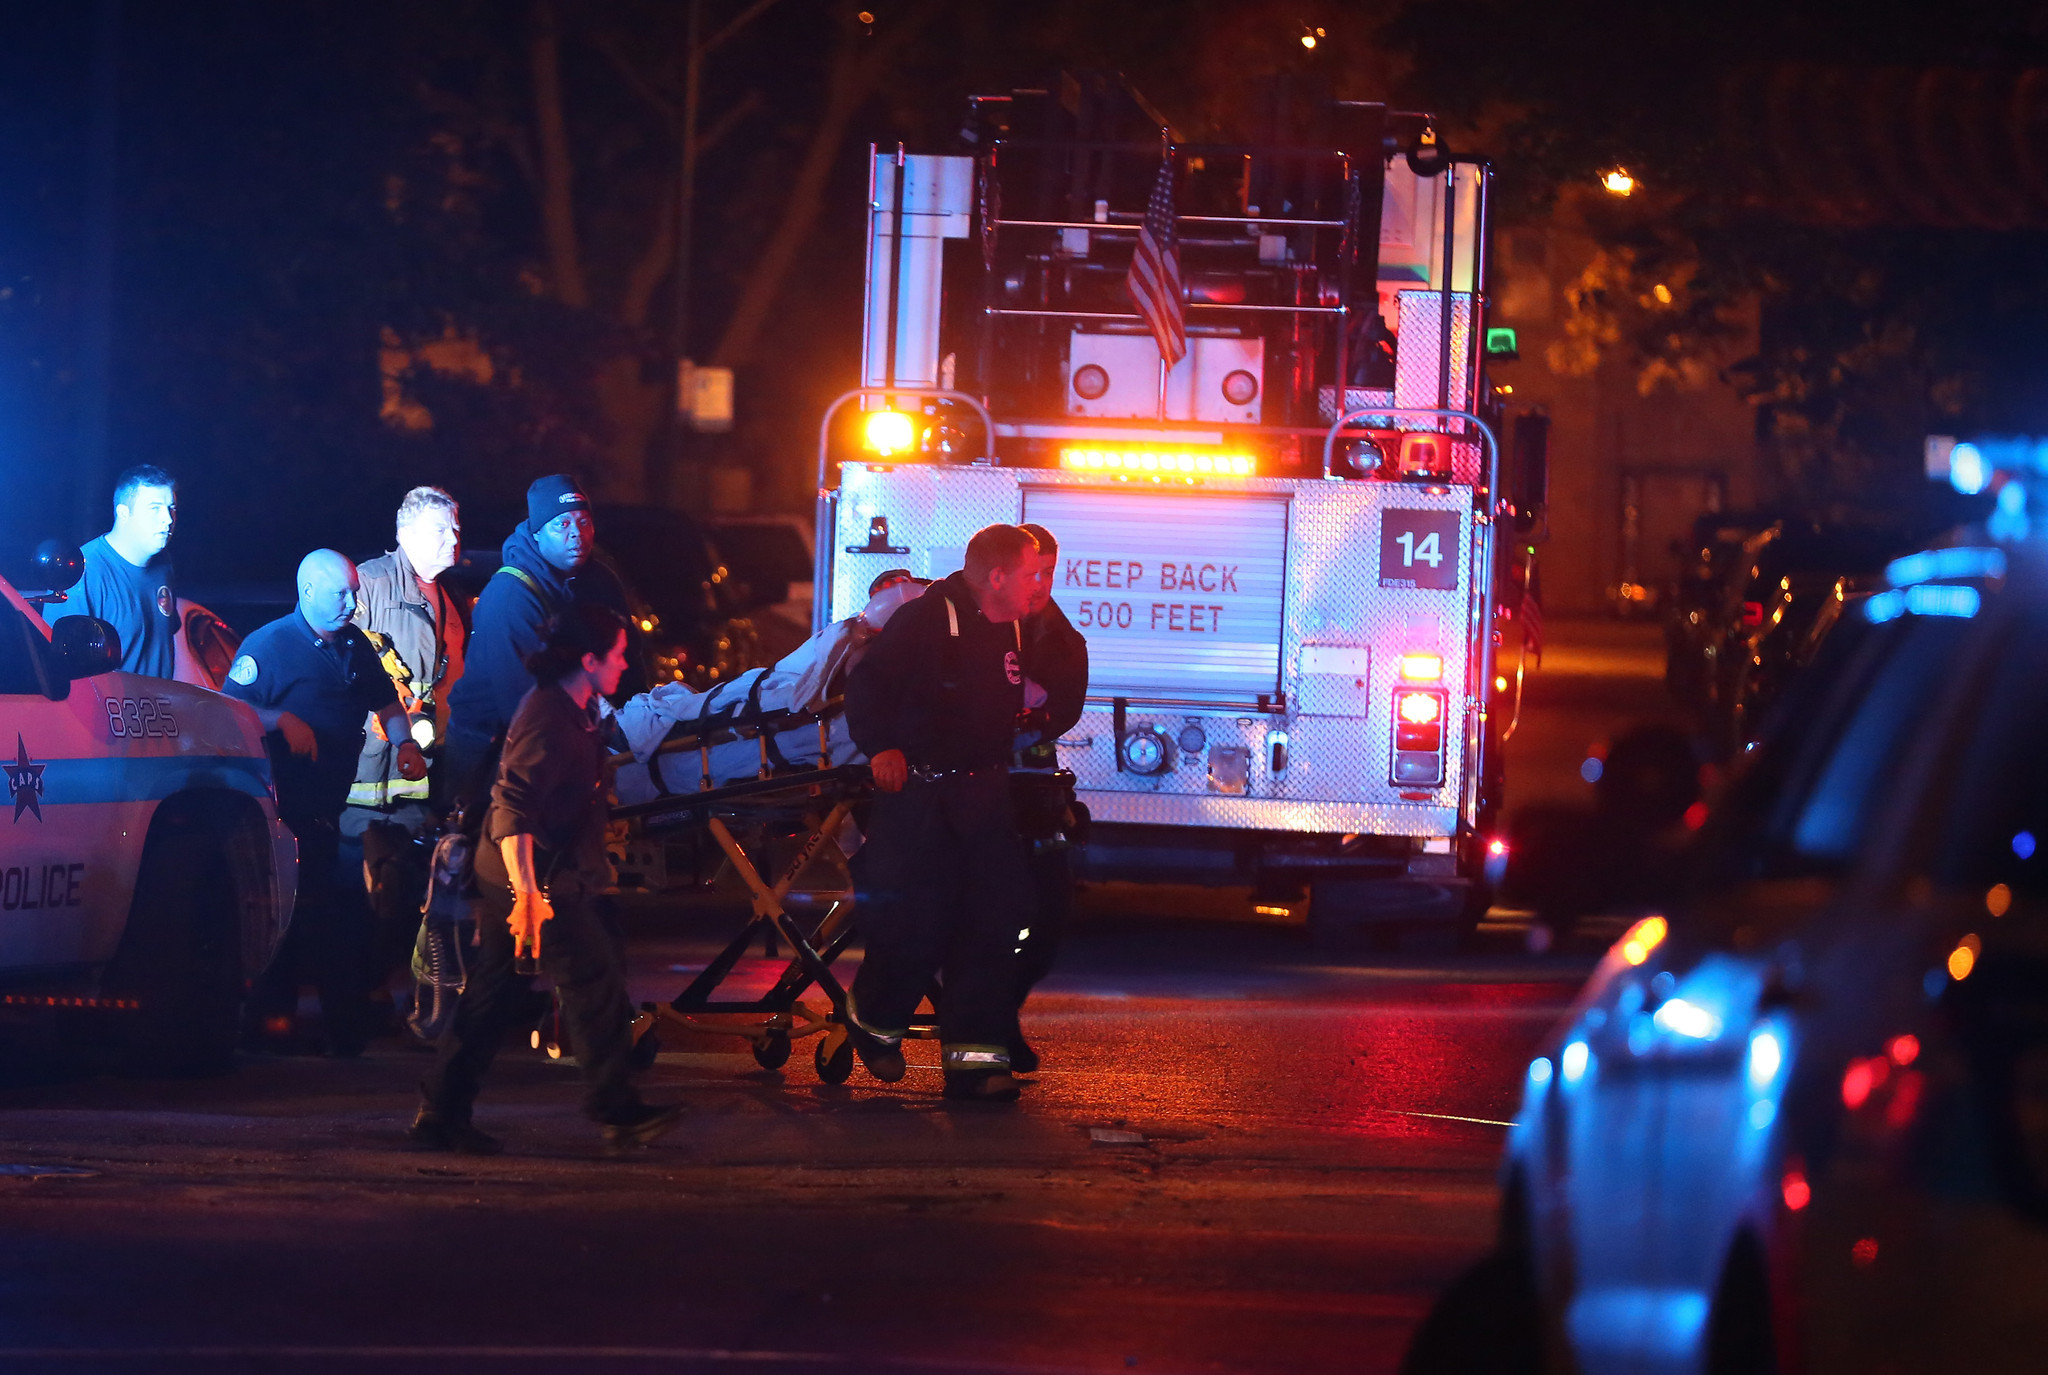 Weekend shooting toll: 4 dead, at least 16 wounded